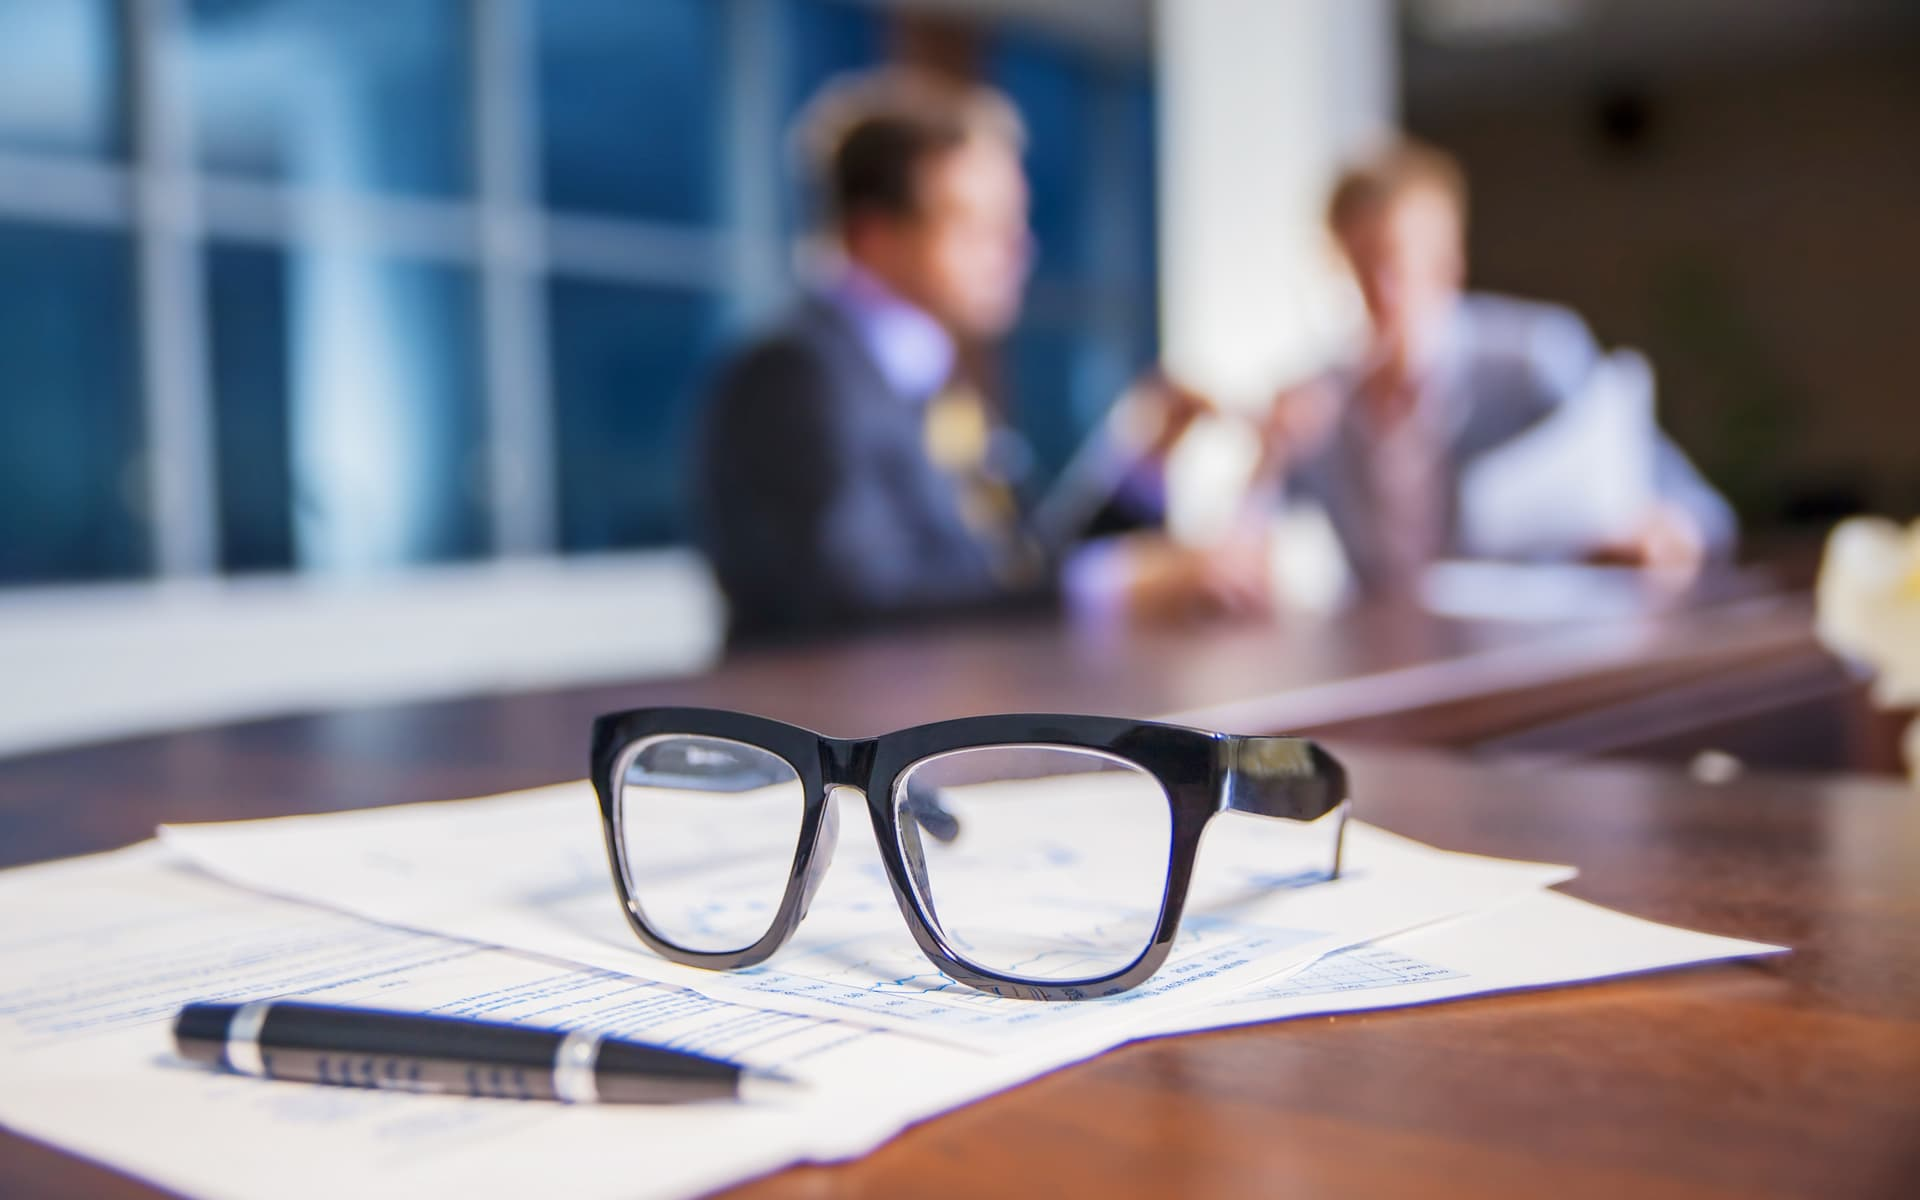 Banking compliance solution watching thru BPM and BDM glasses - glasses lying on a table